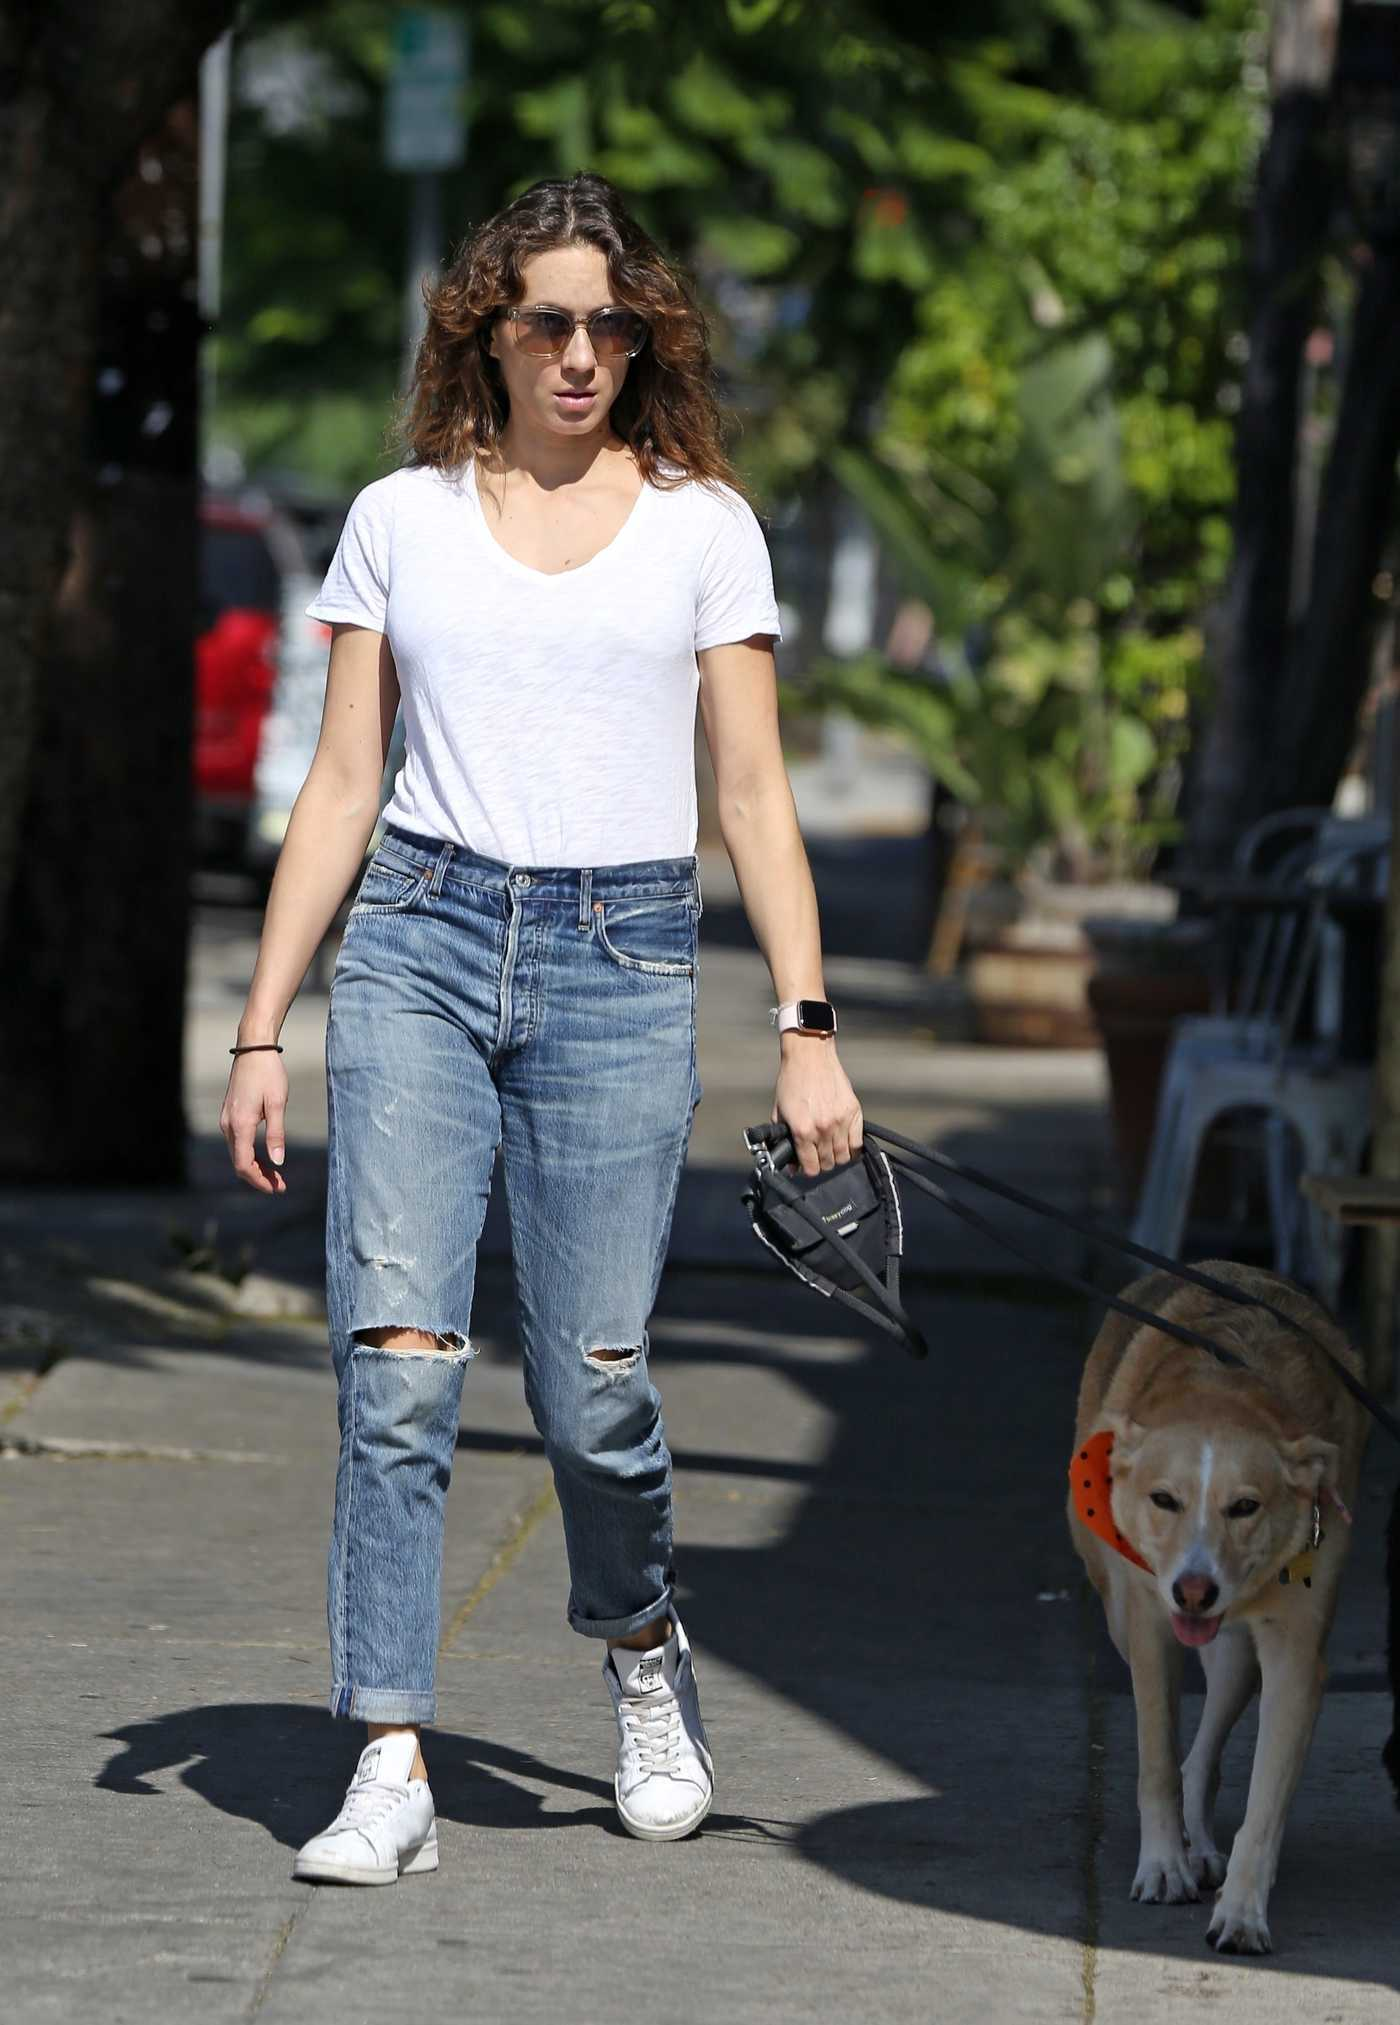 Troian Bellisario in a White T-Shirt Walks with Her Dog in Los Angeles 10/25/2018